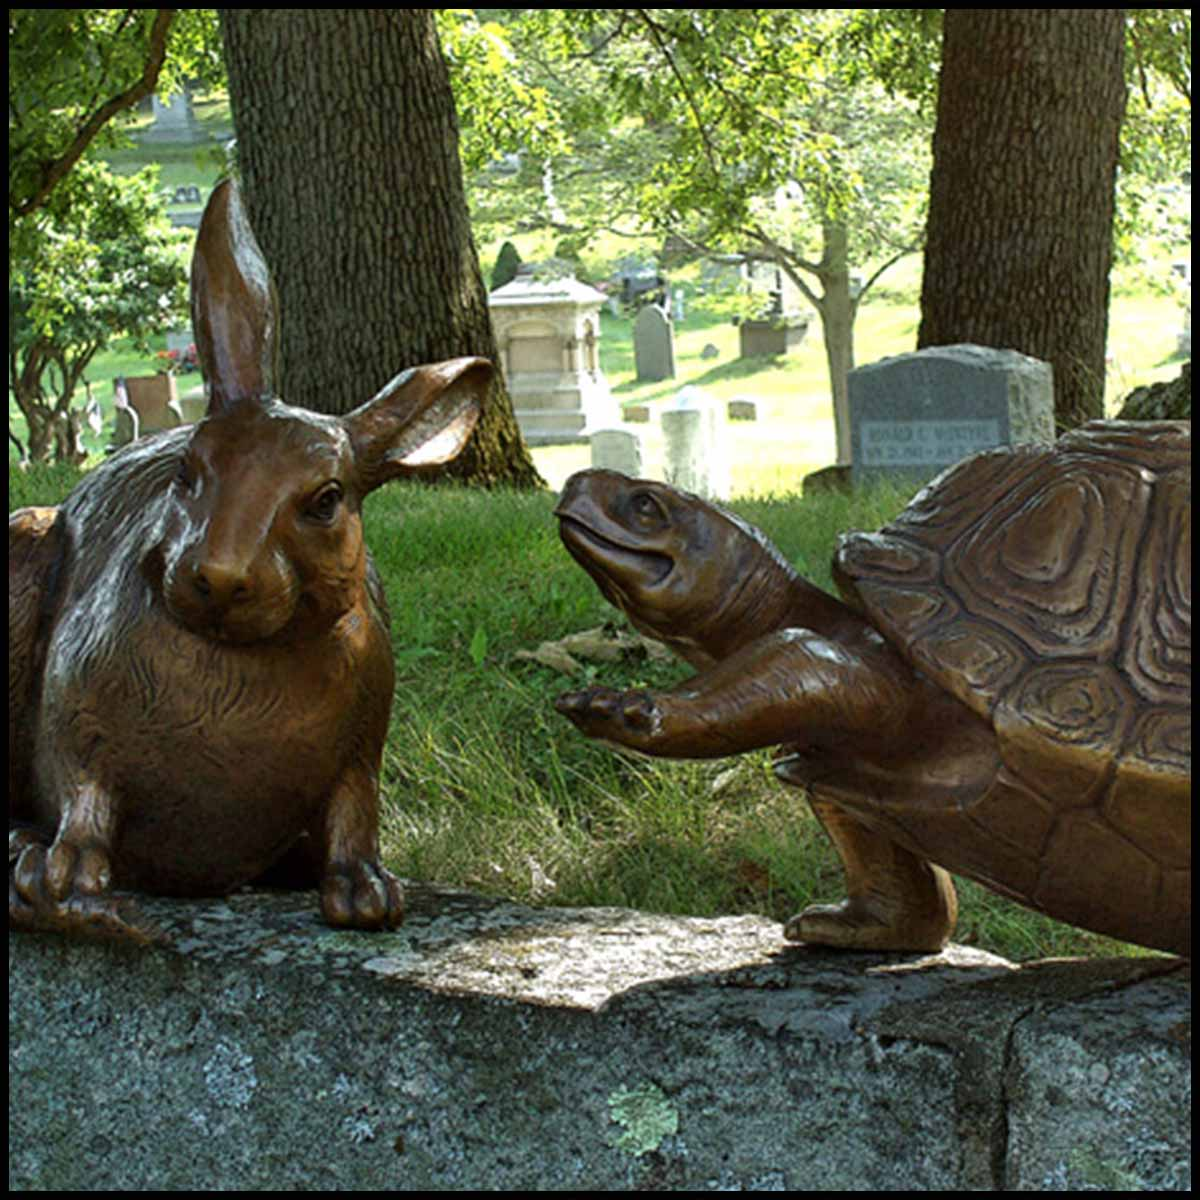 photo of bronze rabbit sculpture and bronze turtle sculpture sitting on a rock wall with grass and trees in the background